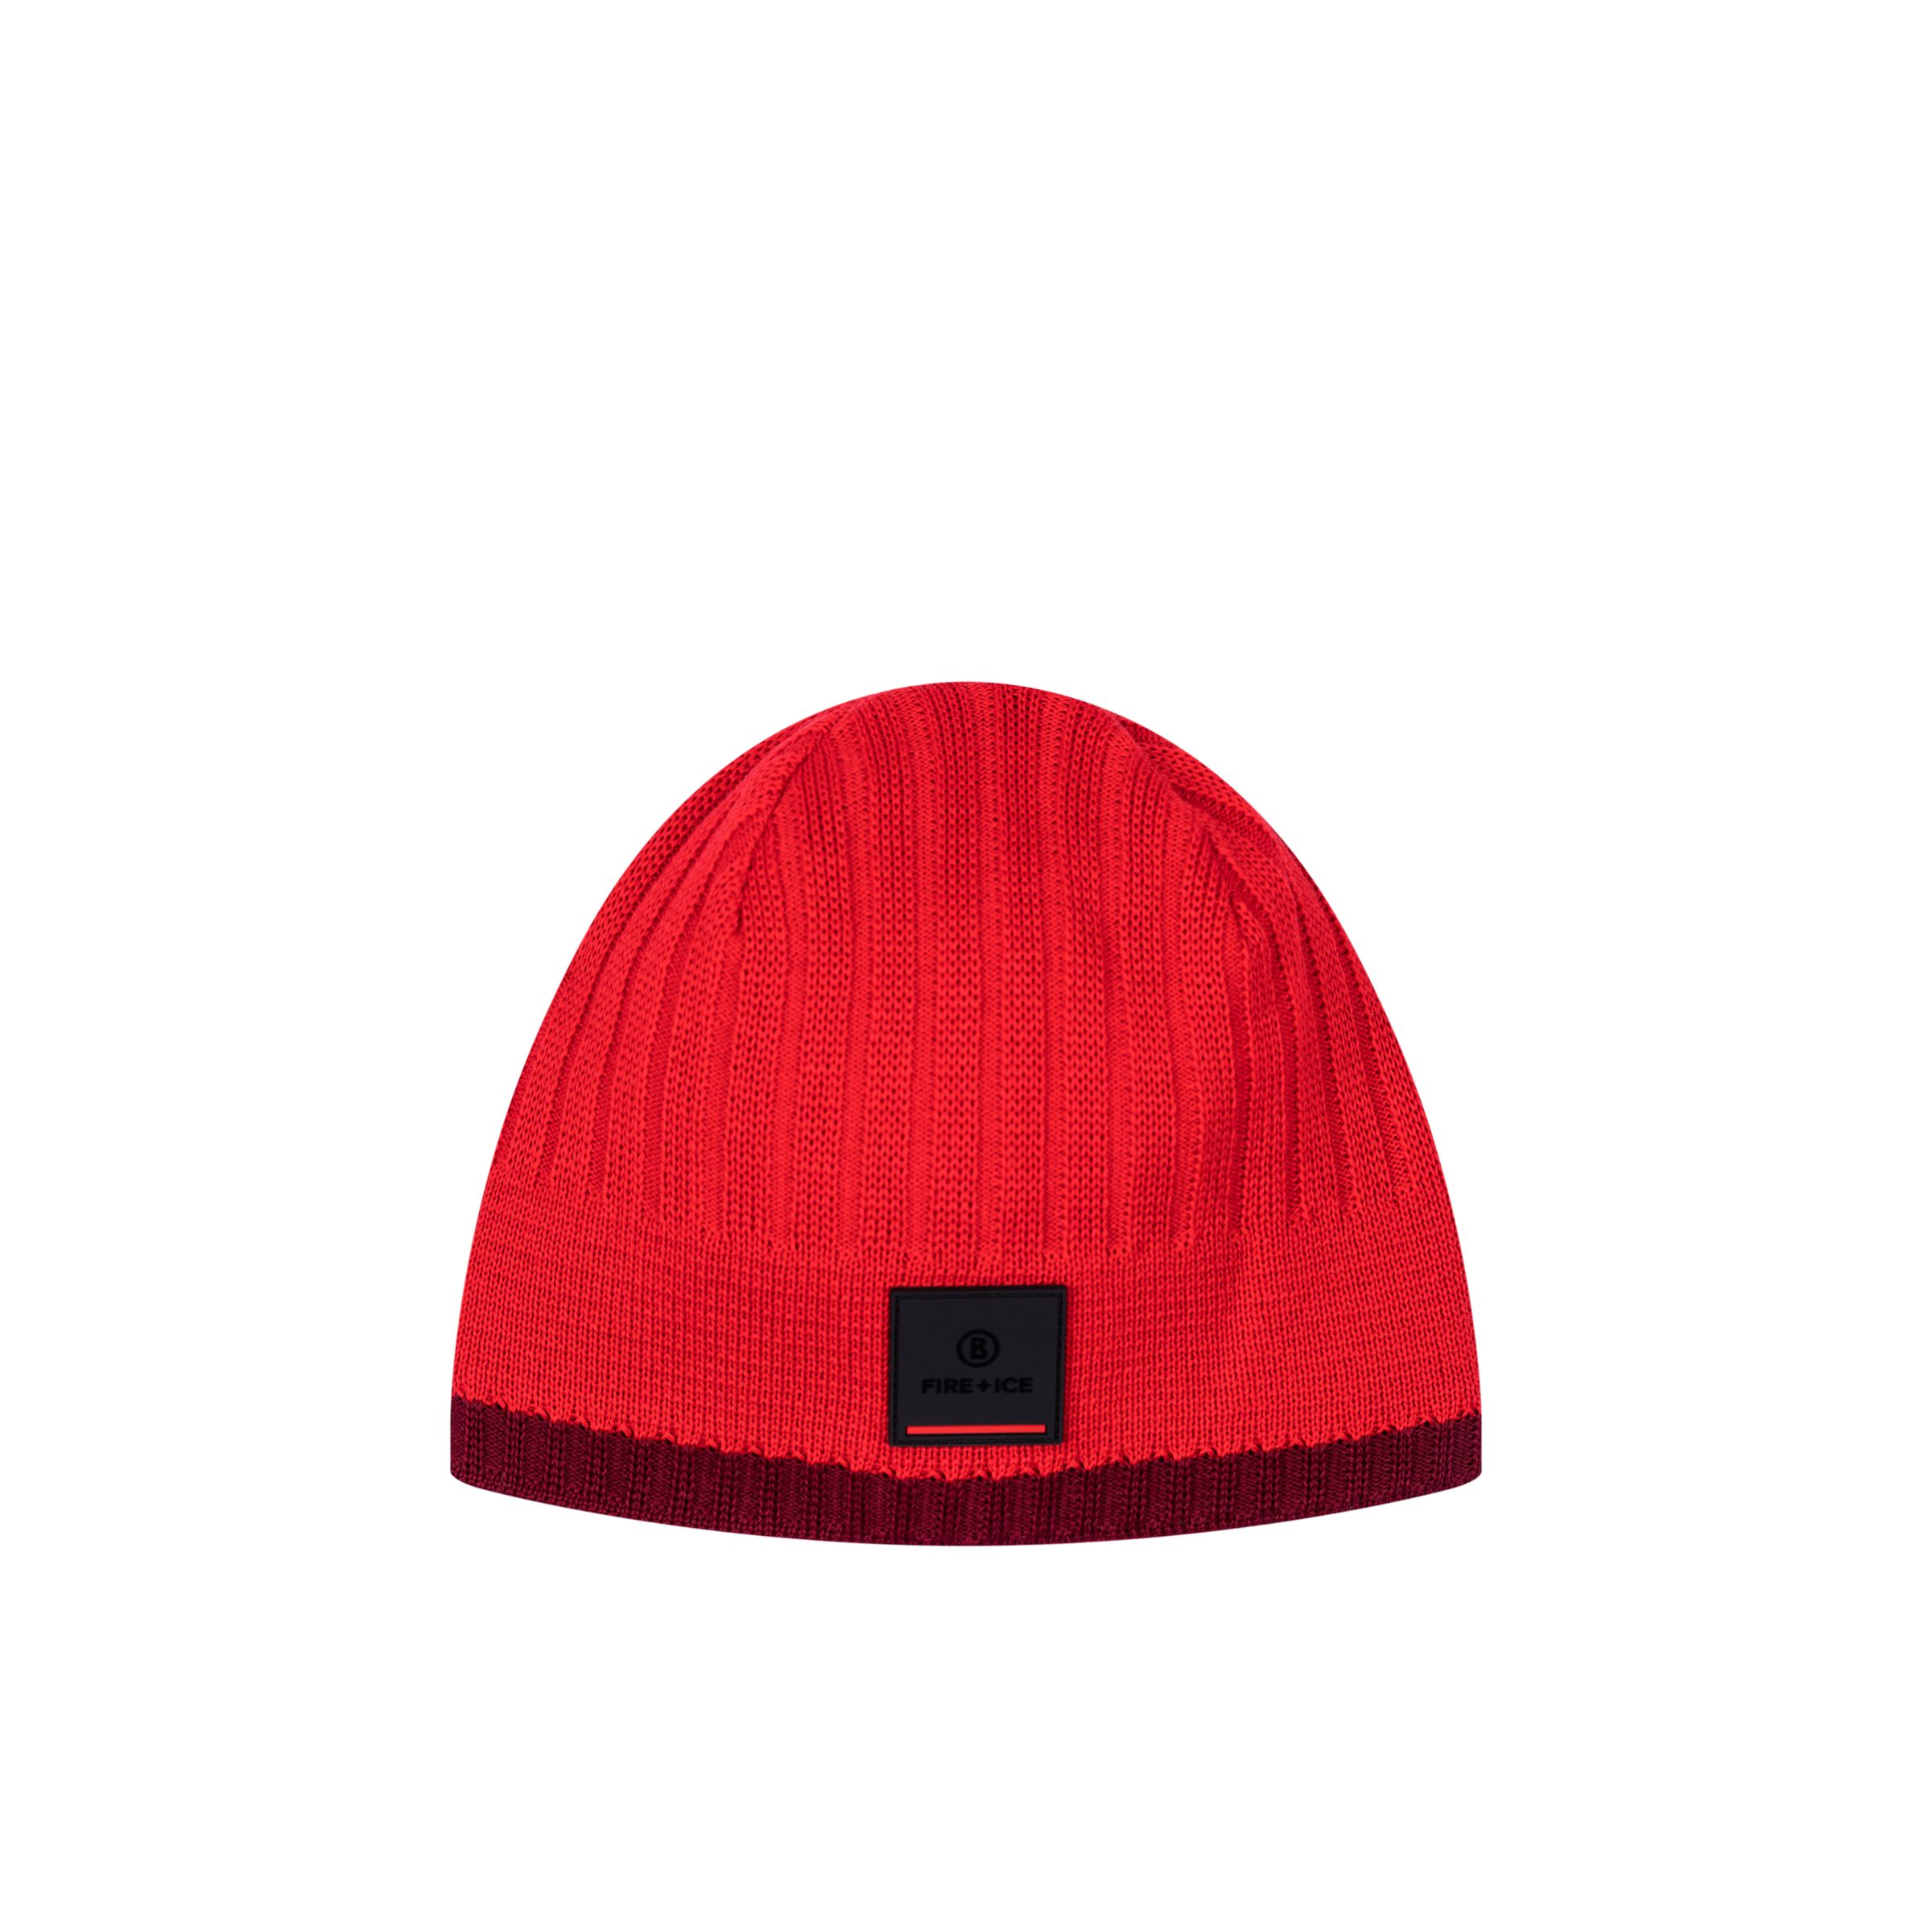 Hats -  bogner fire and ice EASTAN